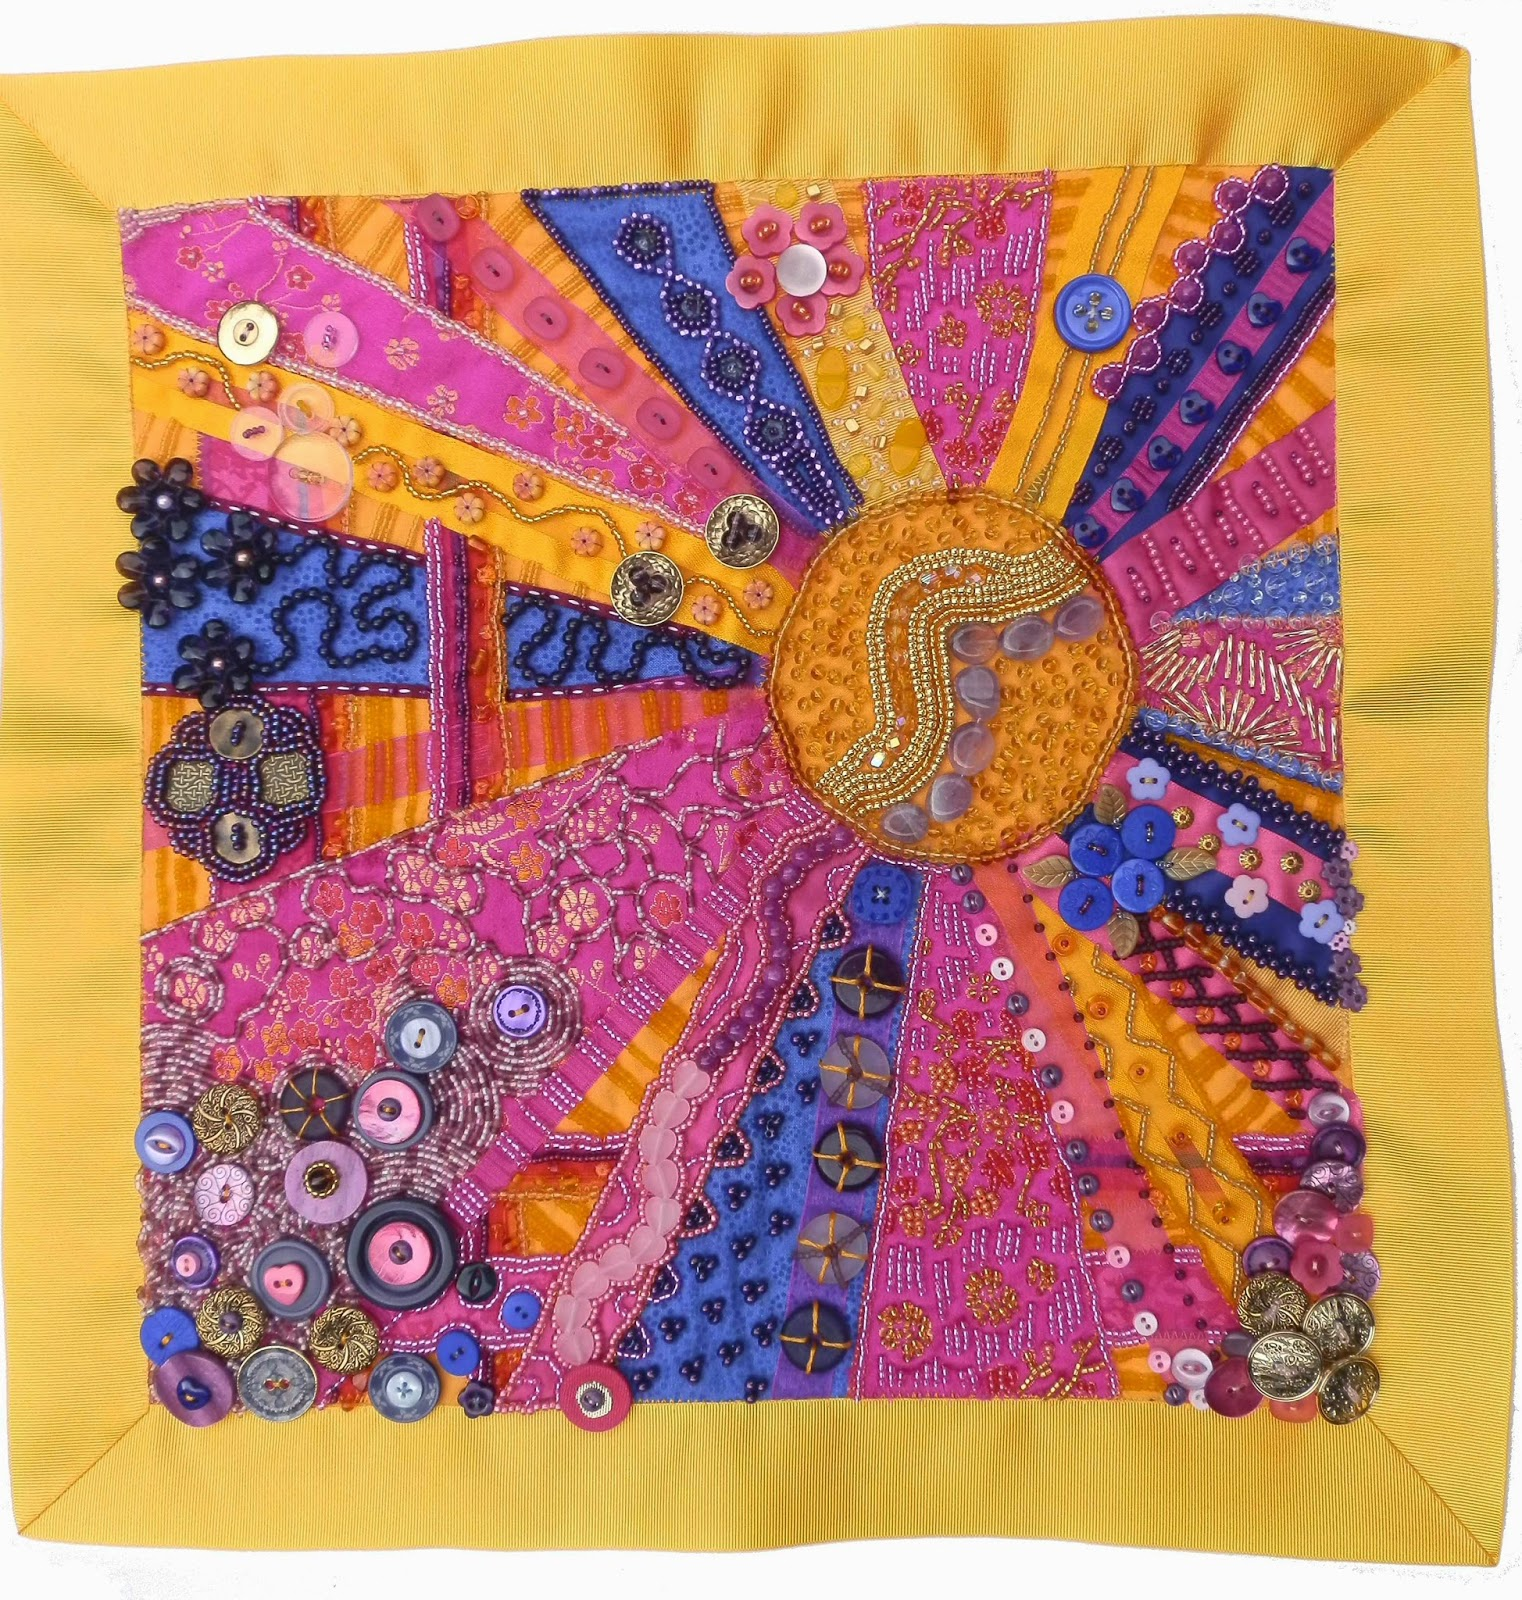 Orange pink and purpled beaded quilt embroidery in sunburst design